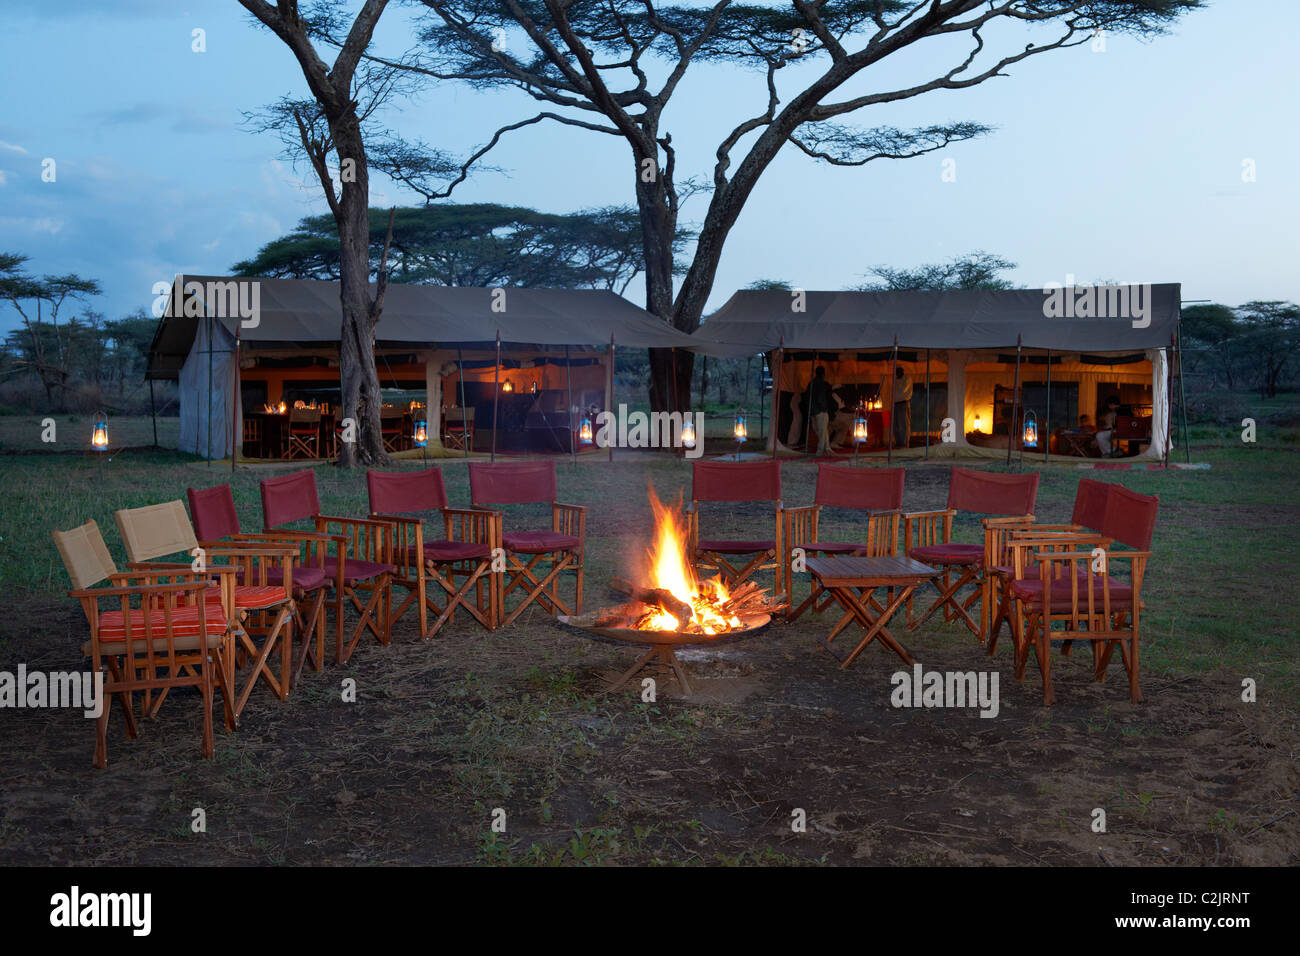 Delicieux Chairs Around Campfire, Main Tent Under Tree Of Serengeti Safari Tended Camp  In Wilderness Of Serengeti, Tanzania, Africa